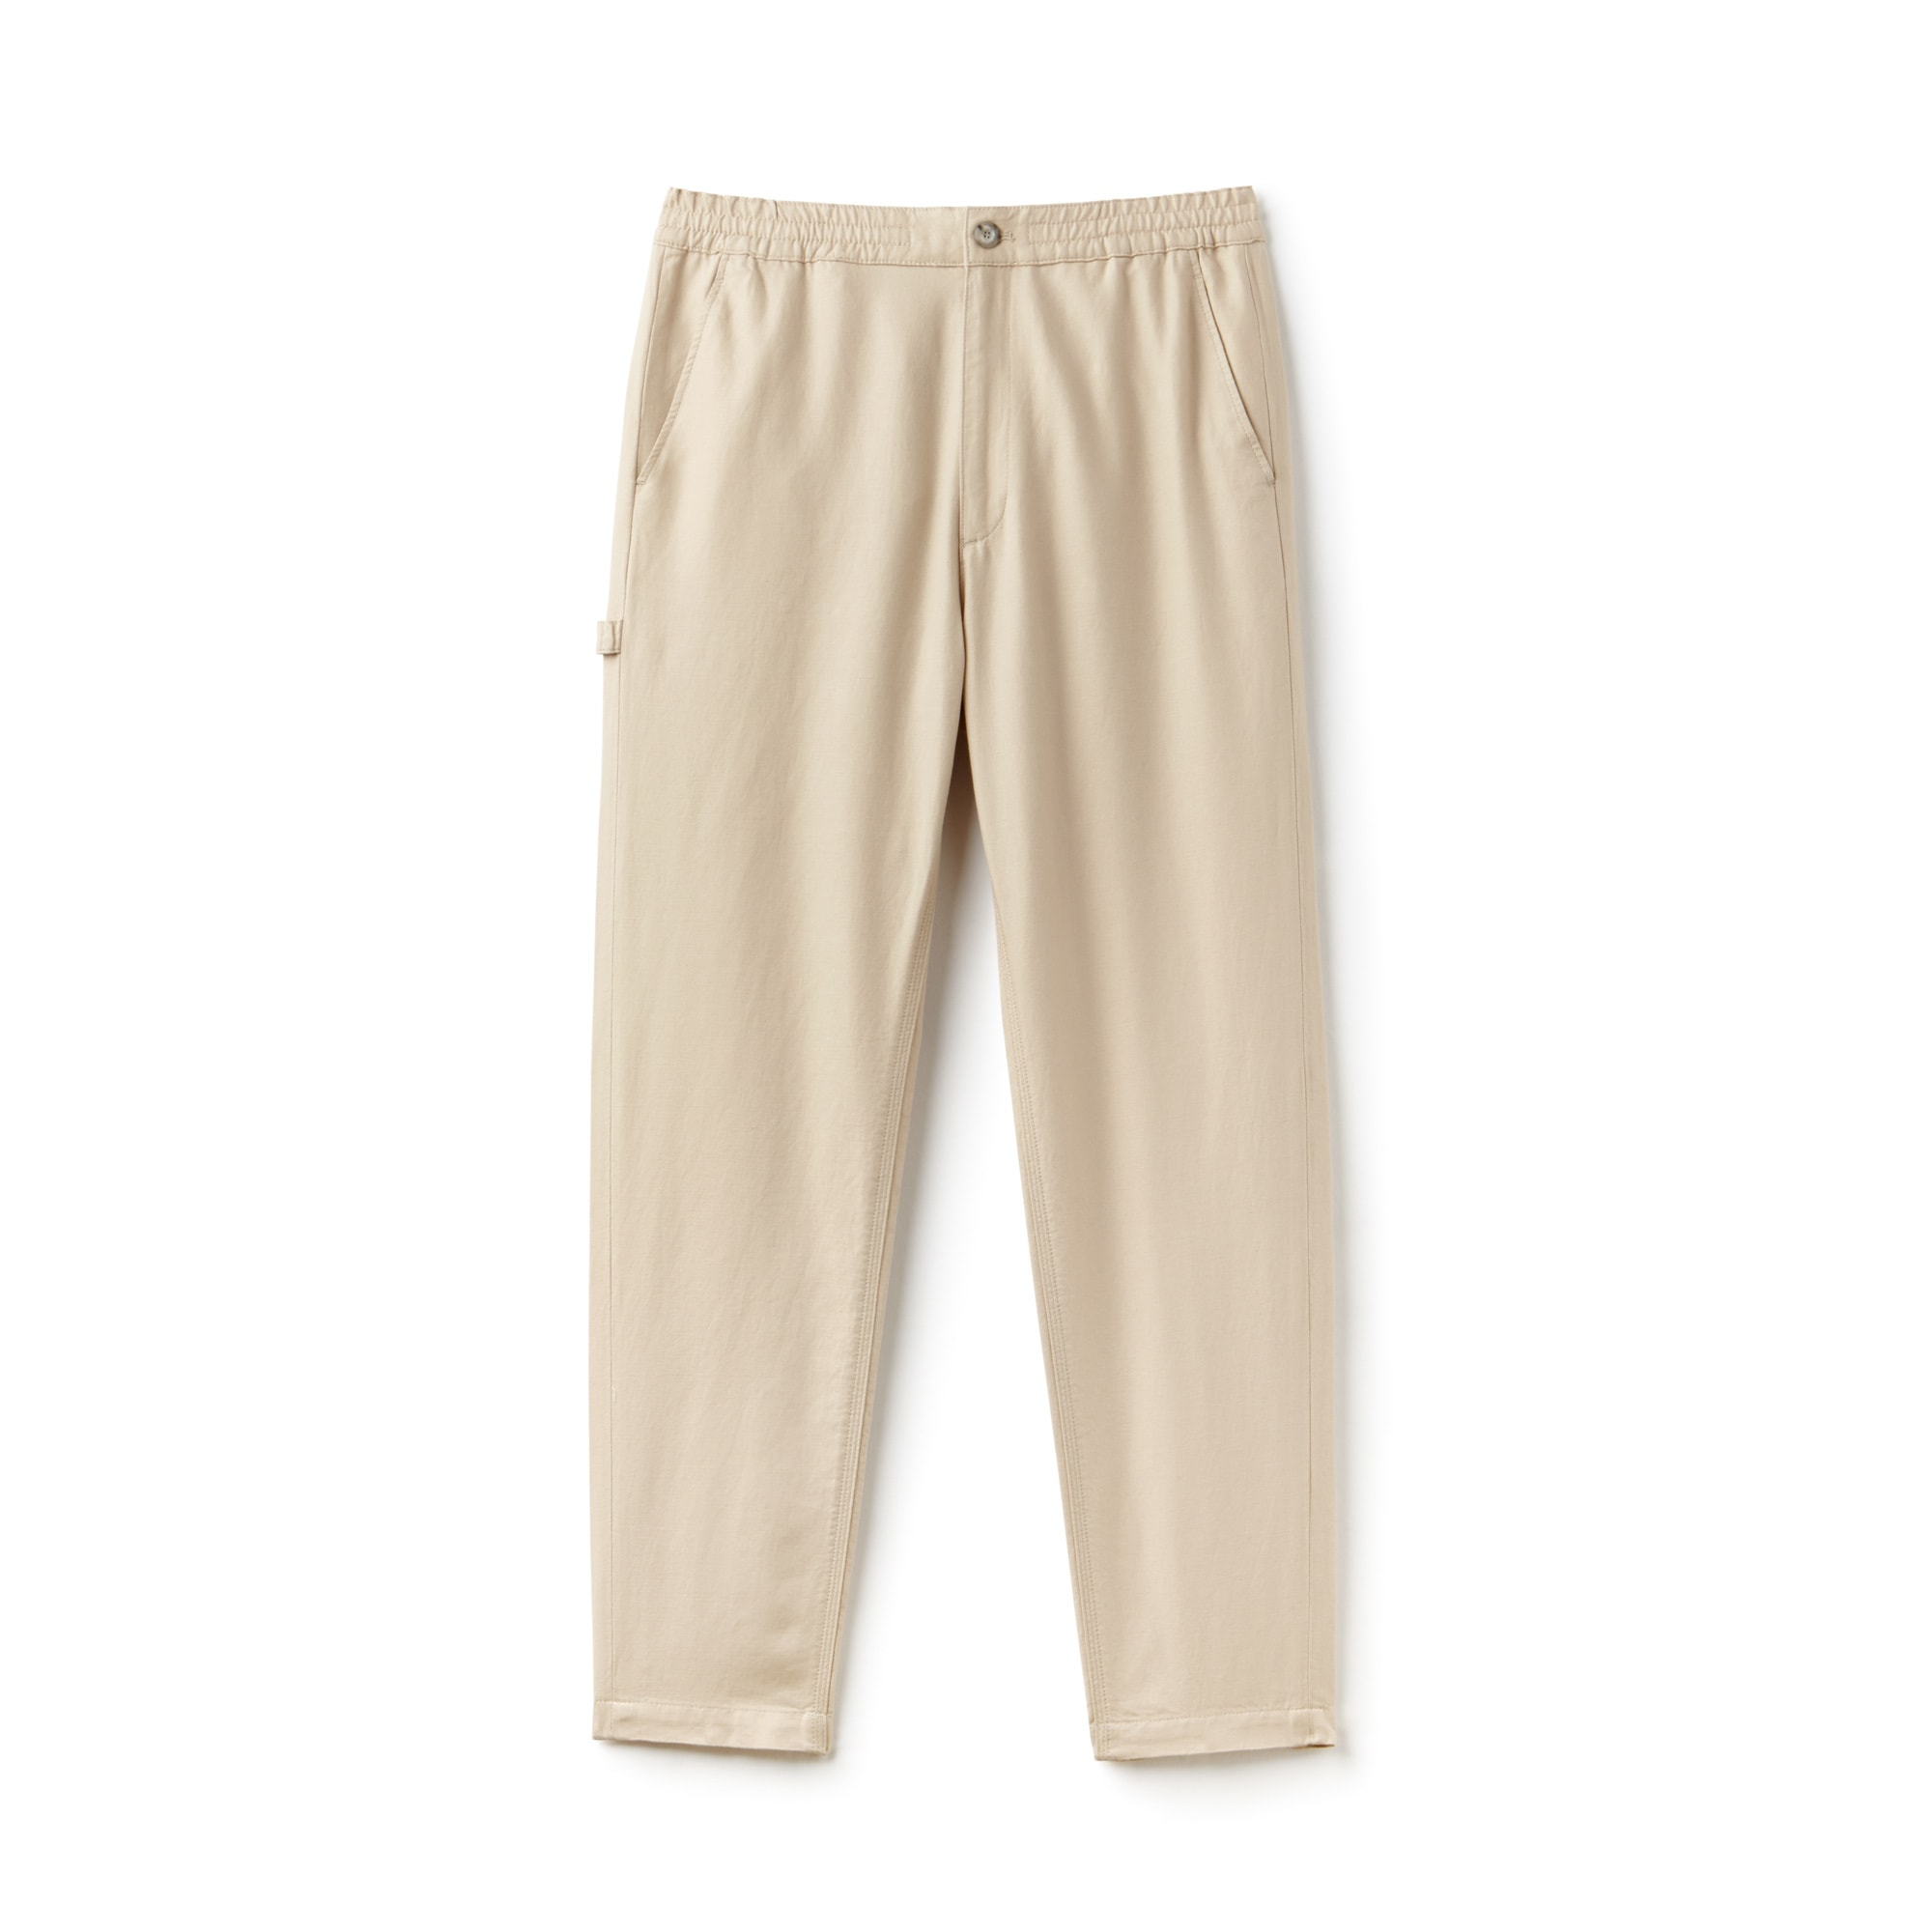 Men's Cotton And Linen Twill Chino Pants